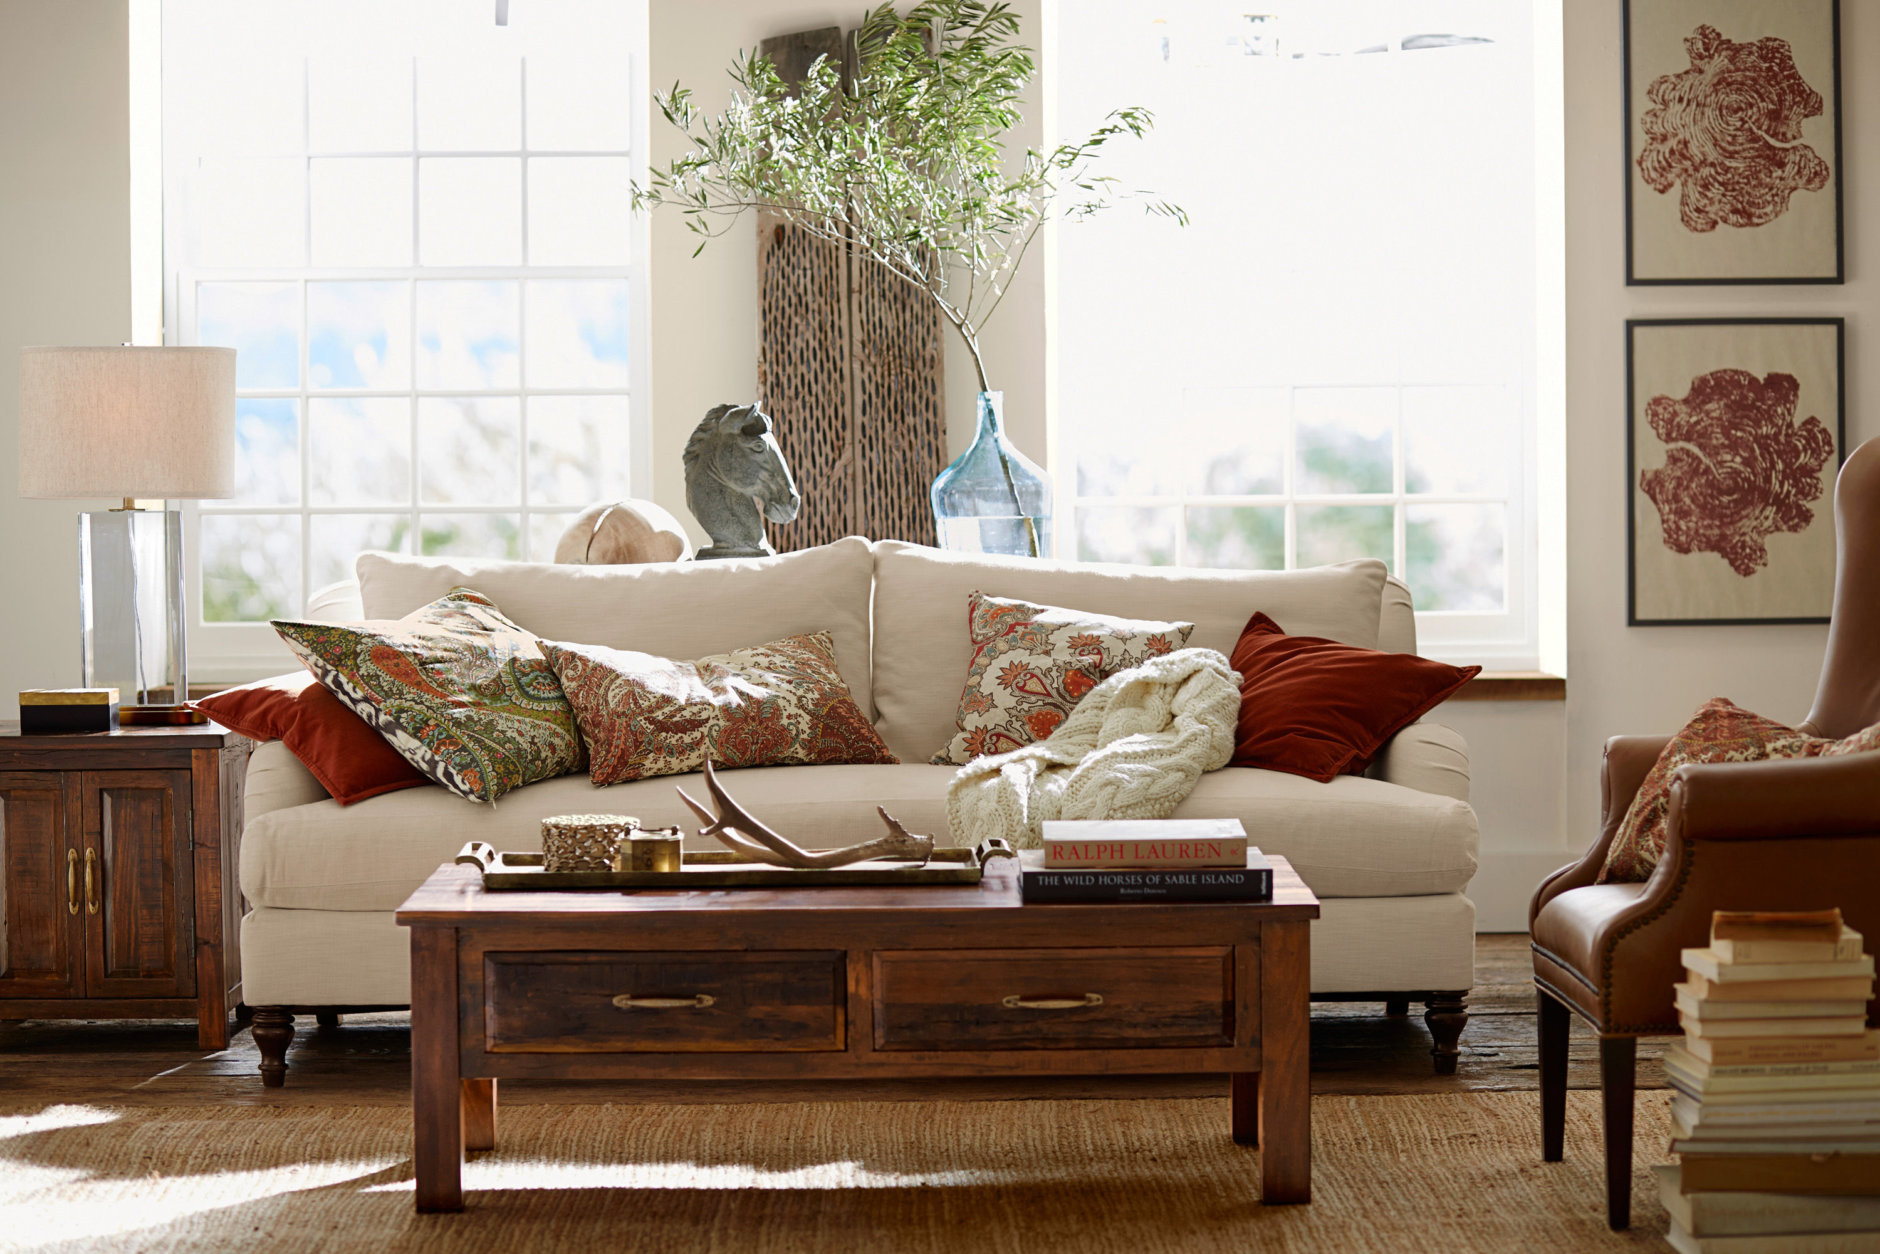 This photo provided by Pottery Barn shows a reclaimed wood coffee table in a living room that is part of the new Bowry collection. Each piece is made of reclaimed wood, which is an increasingly popular material for furniture. (Pottery Barn via AP)